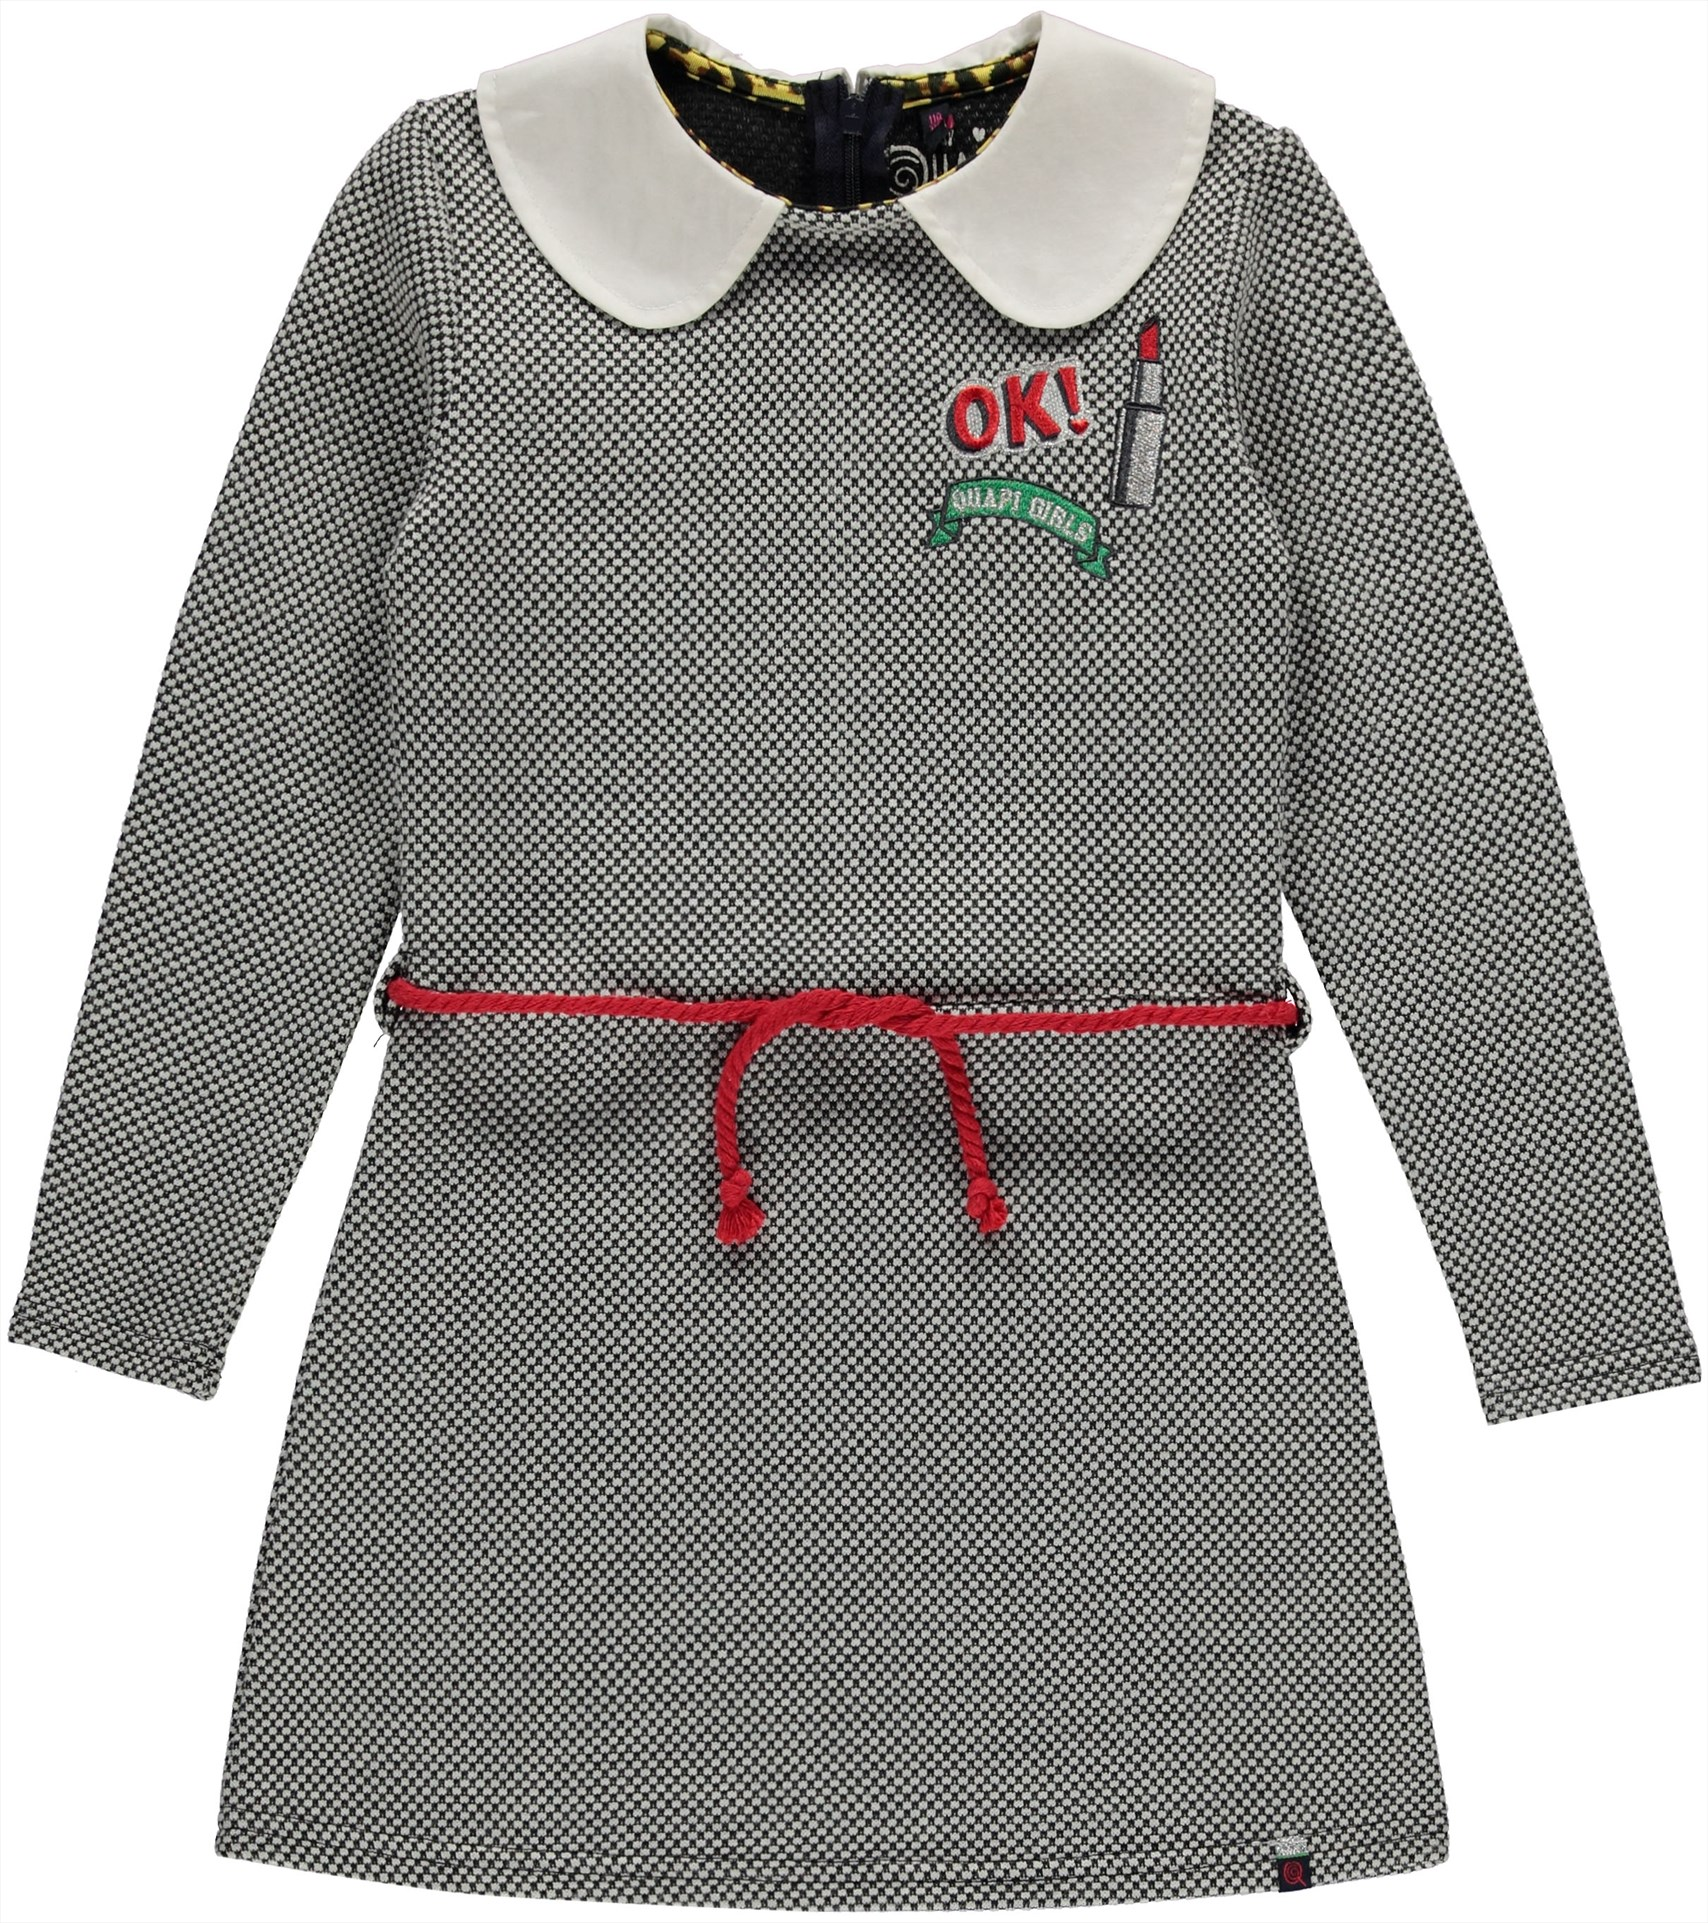 Kinderkleding Maat 98.Maat 98 104 Quapi Dress Grey Jaquard Koters Baby En Kinderkleding